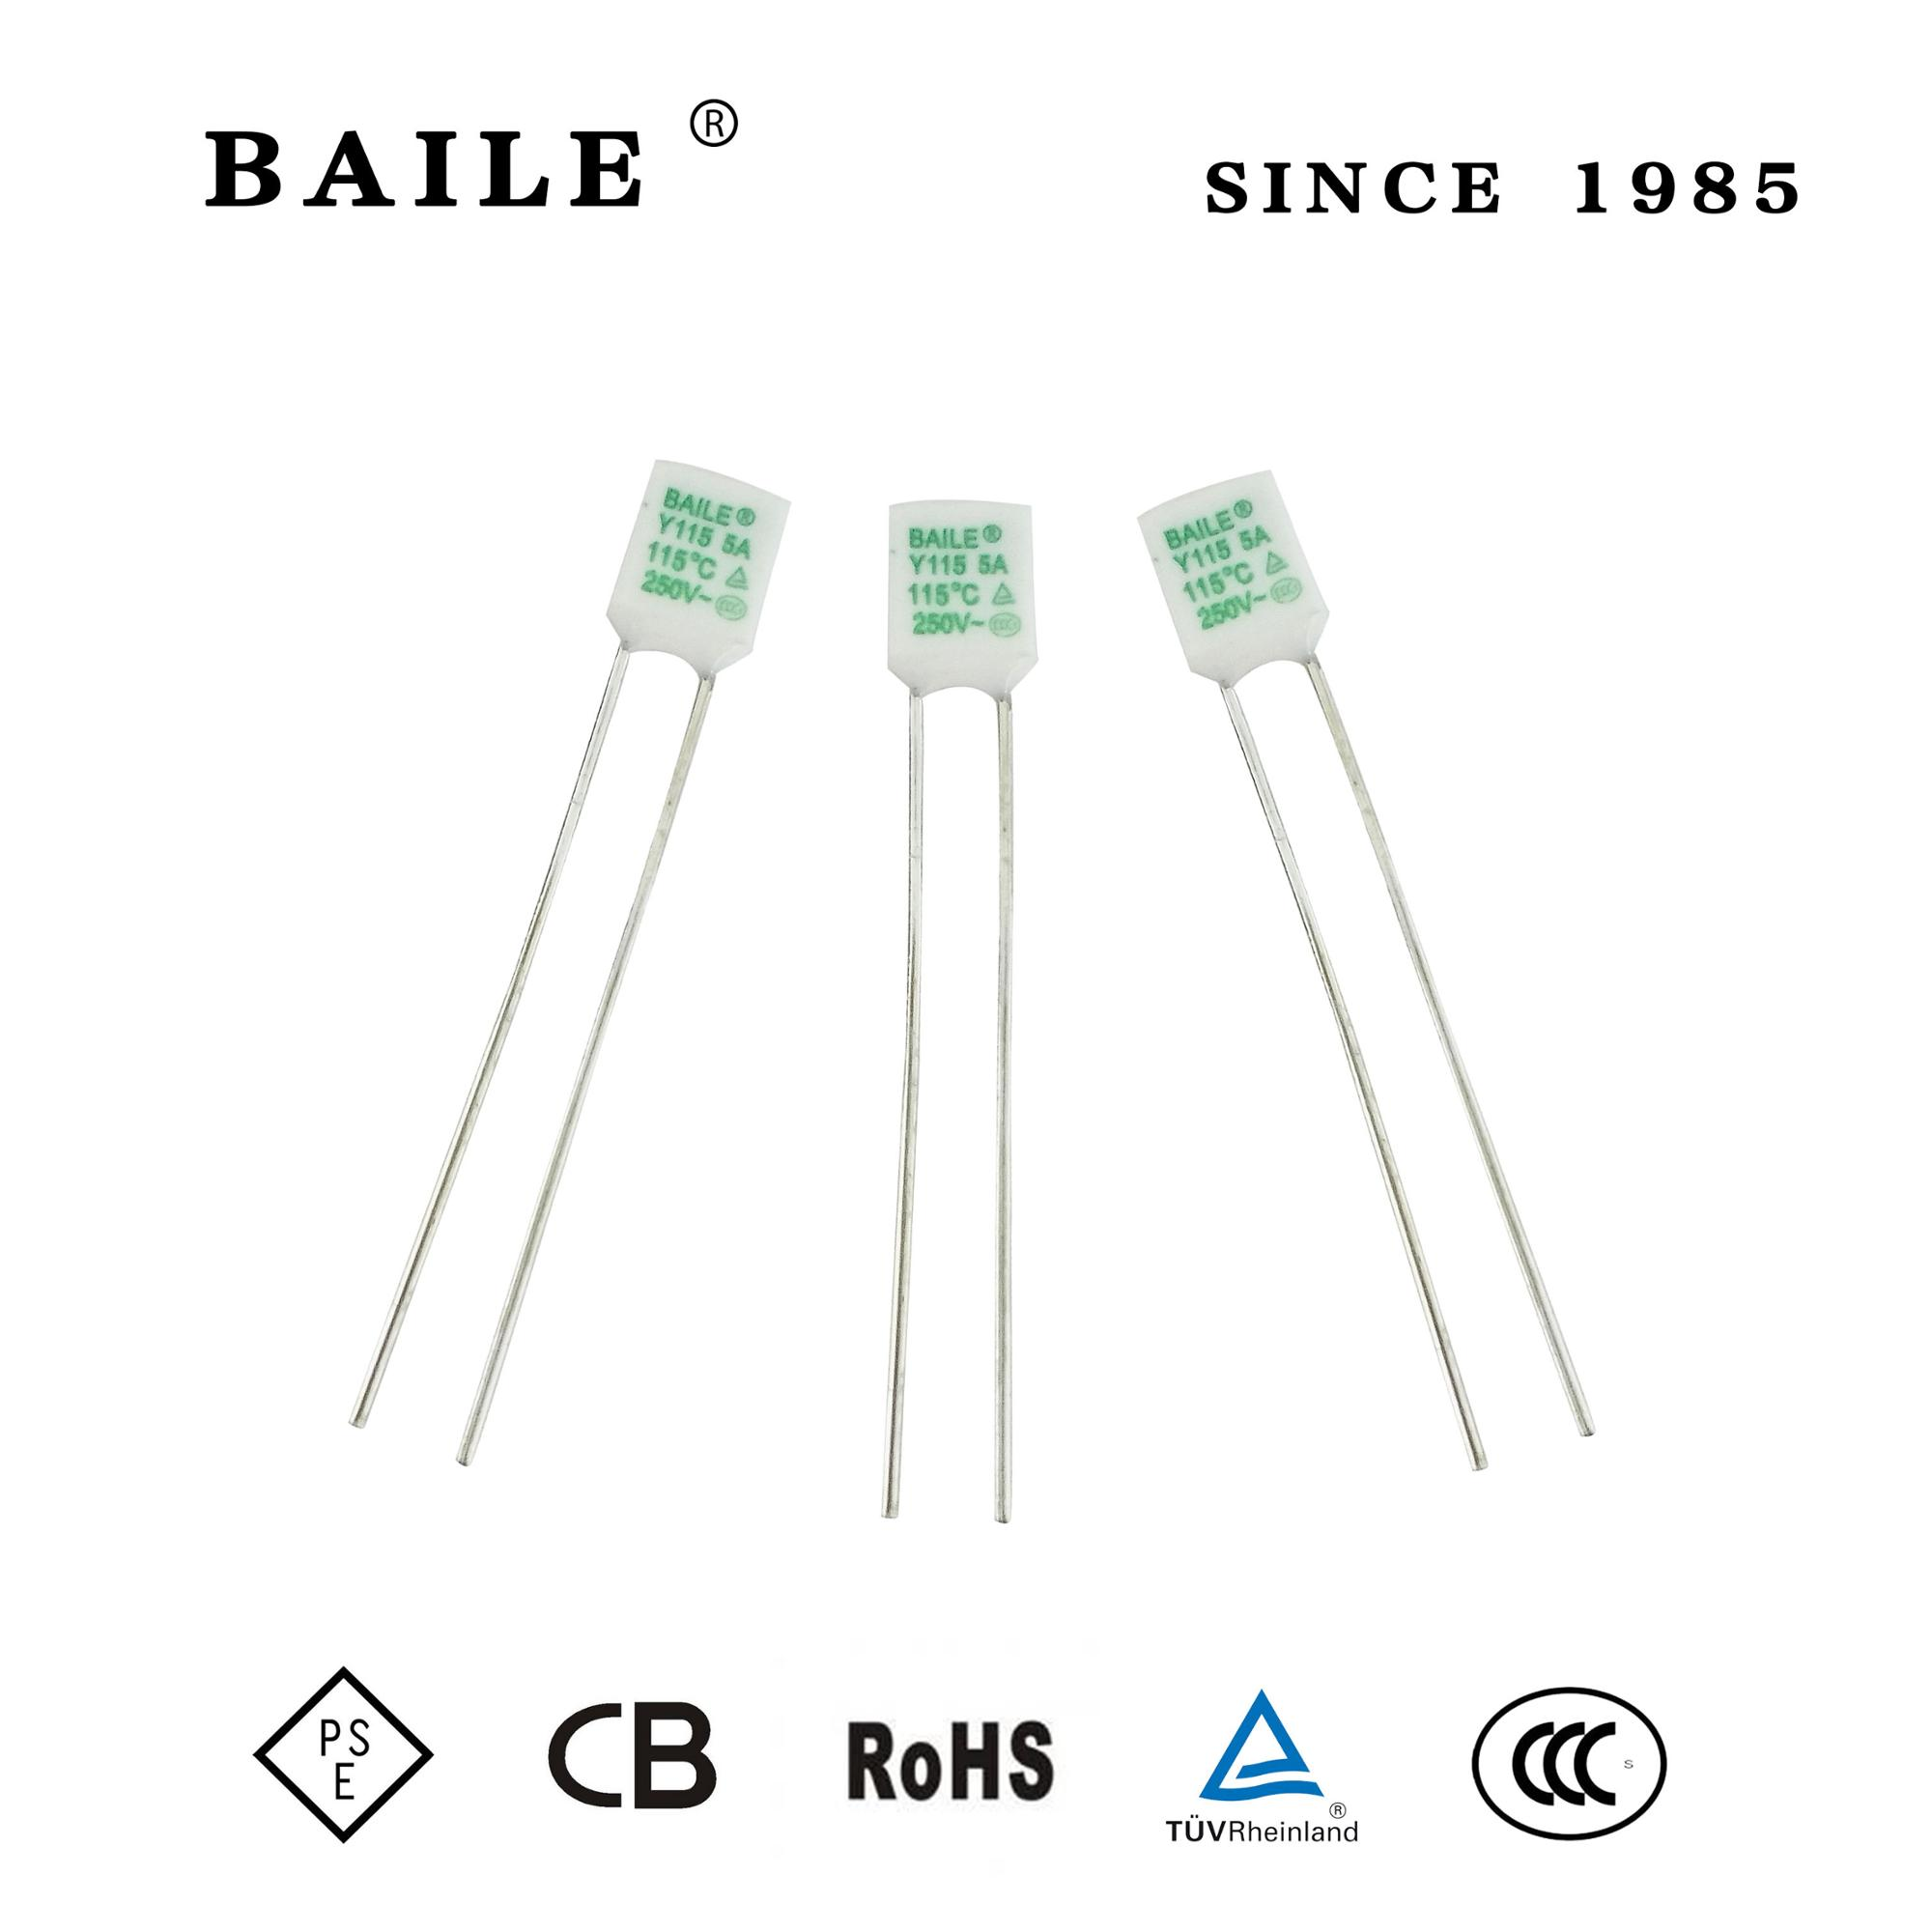 Baile Thermal Fuse Link For Refrigerator 10a 15a 250v